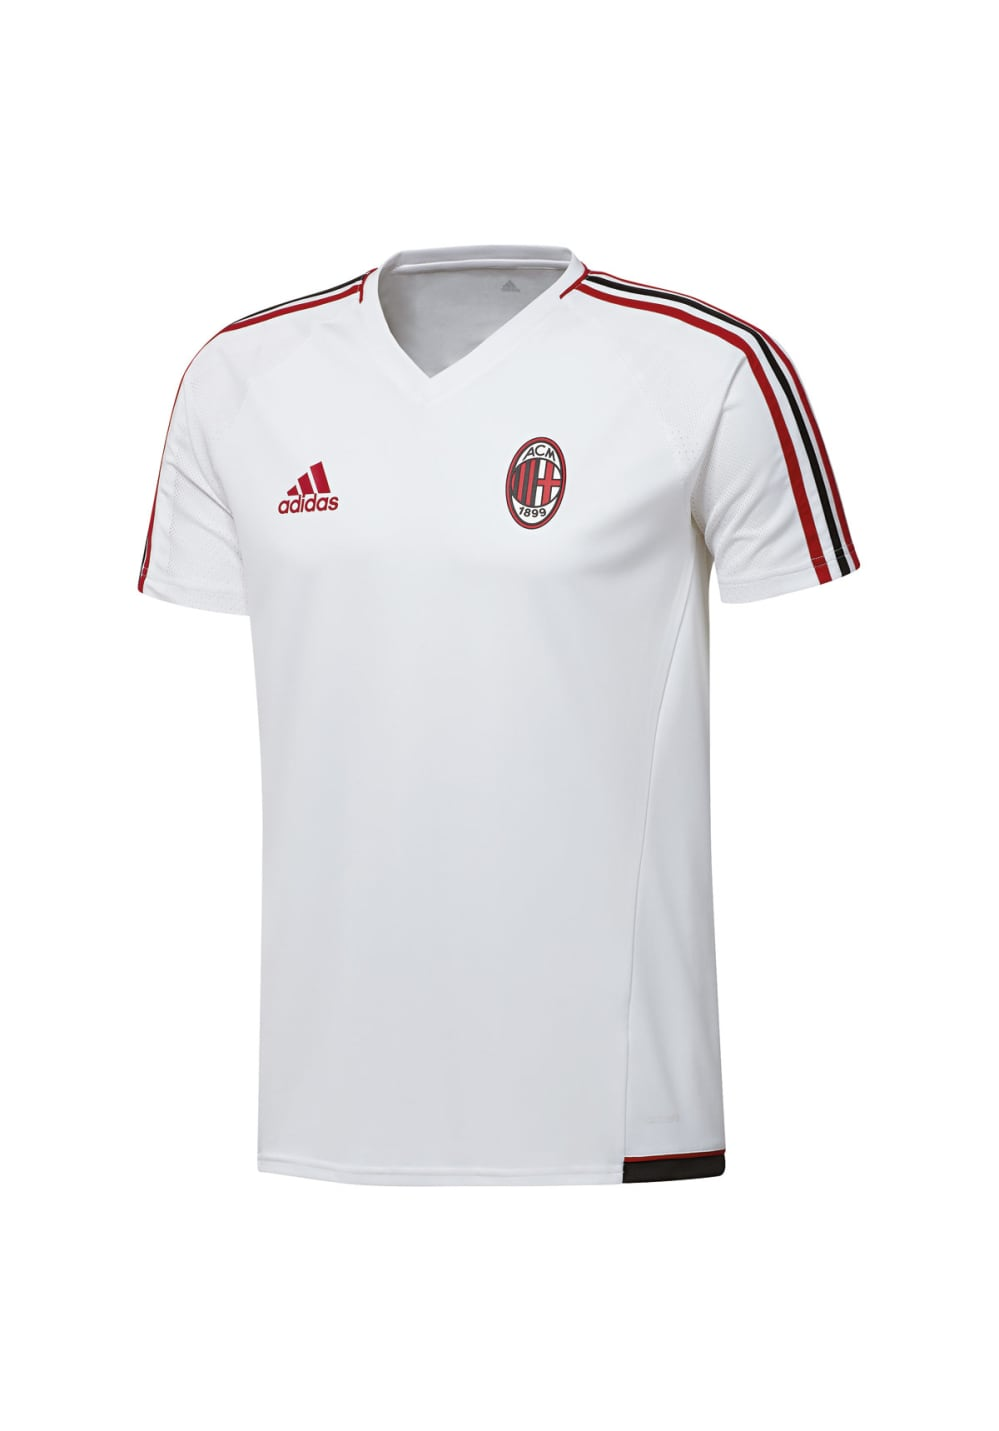 Football Homme adidas Maillot pour Homme Milan AC Replica